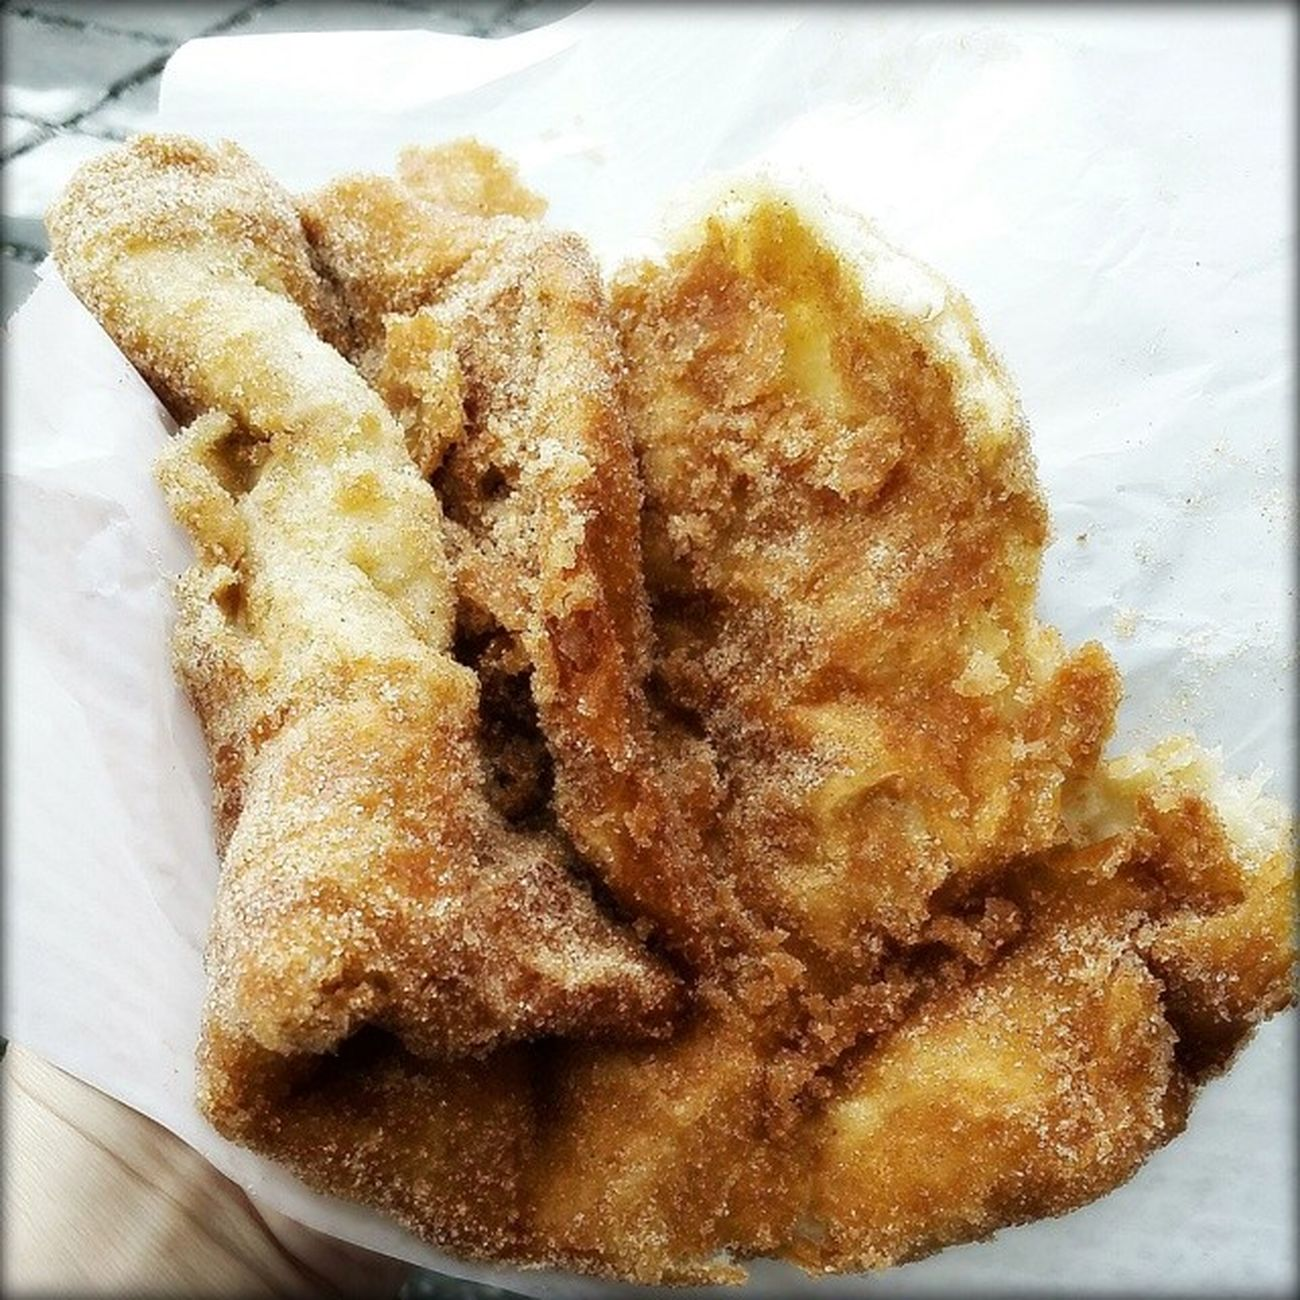 My absolute Favorite thing to Eat at PortlandSaturdayMarket is the Cinnamon & Sugar Elephantears . GoodTimes Goodmemories Goodfood Foodporn Nomnom Deepfriedfood PortlandOregon TravelOregon Cellphonephotography Pixelmixer Pixlromatic Picoftheday Pictureoftheday Photooftheday Samsunggalaxynote3